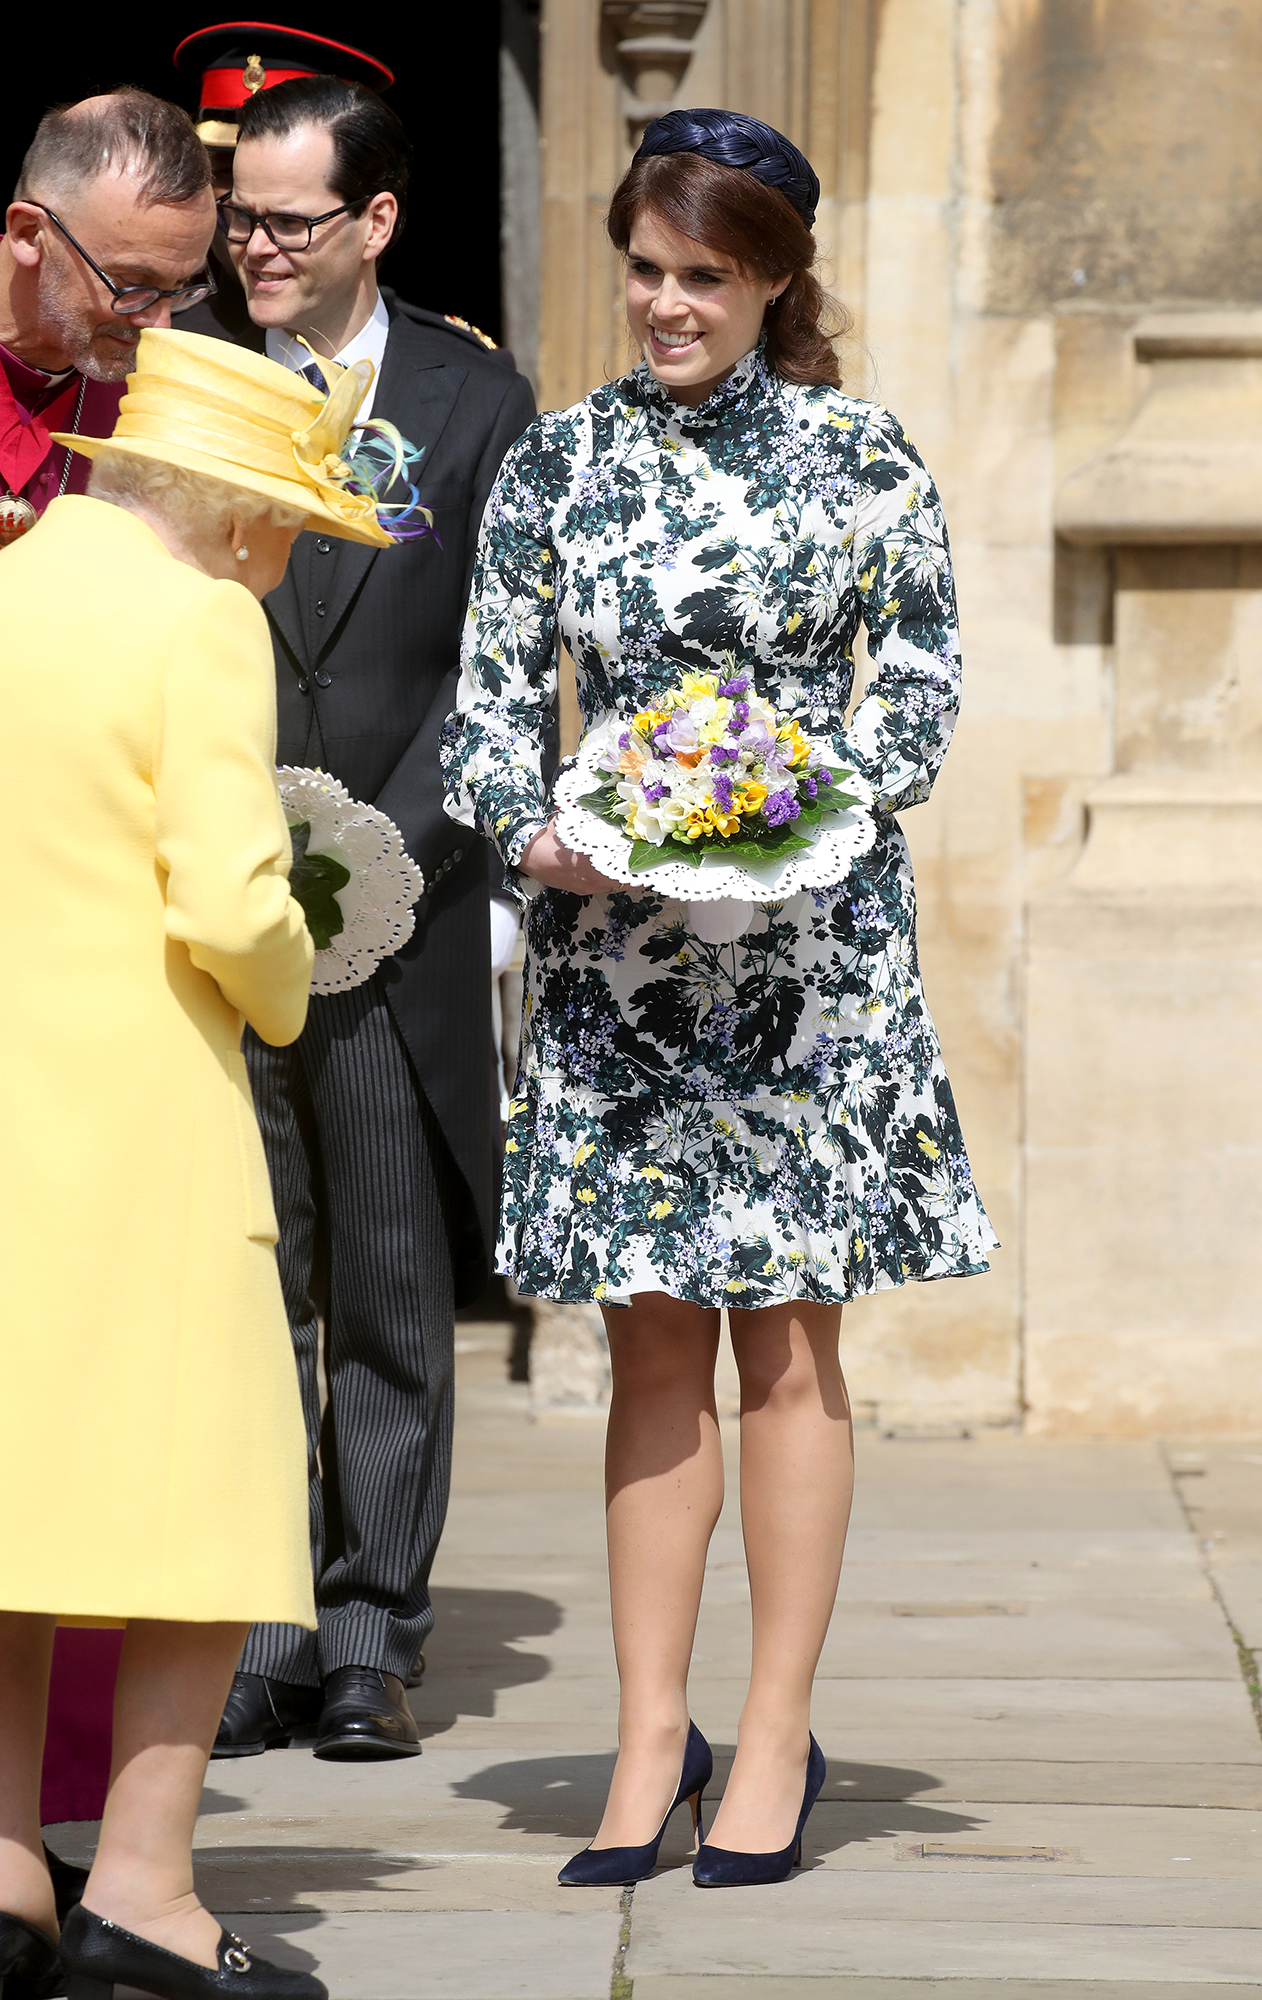 Princess Eugenie Returns to Scene of Her Wedding - Eugenie was all smiles while accompanying her grandmother for the annual outing.